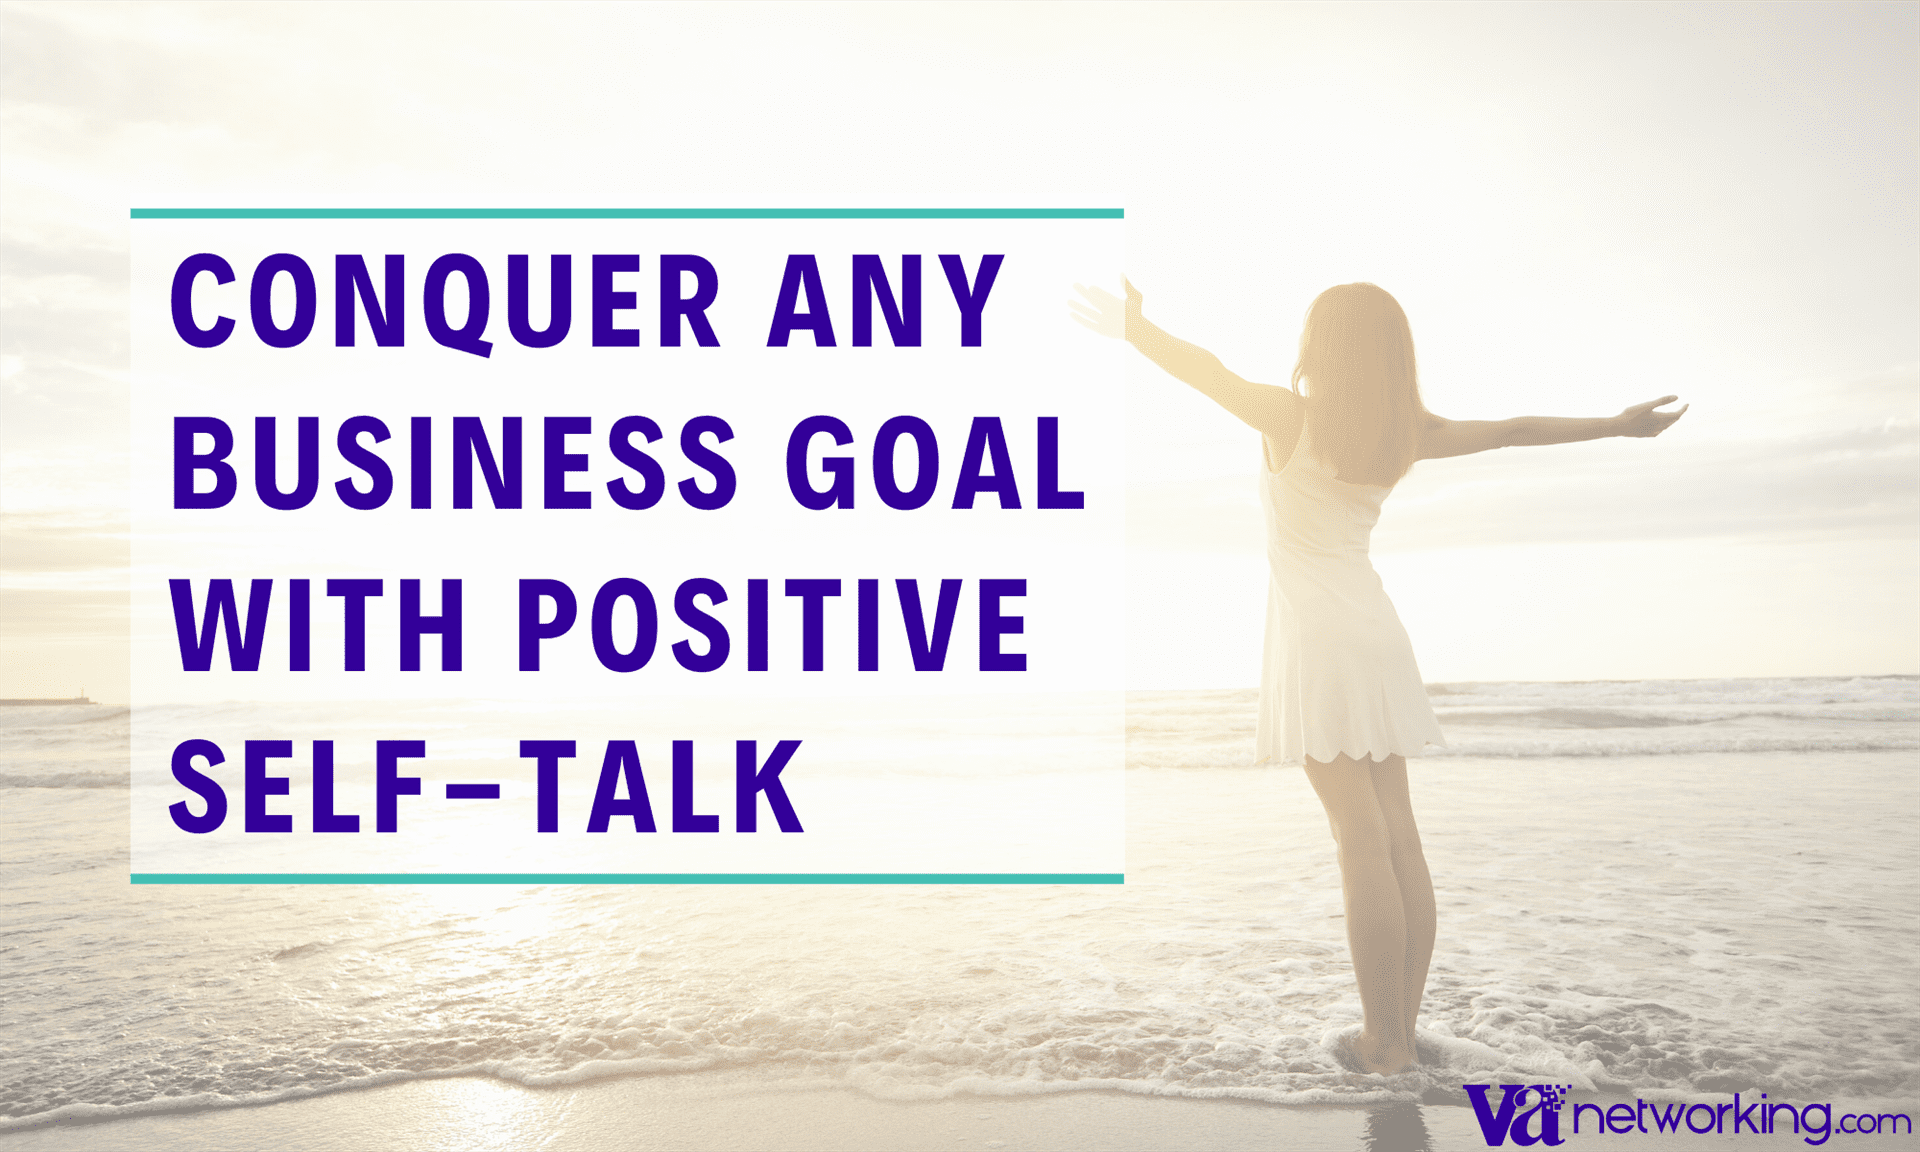 How to Use Positive Self-Talk to Conquer Any Business Goal